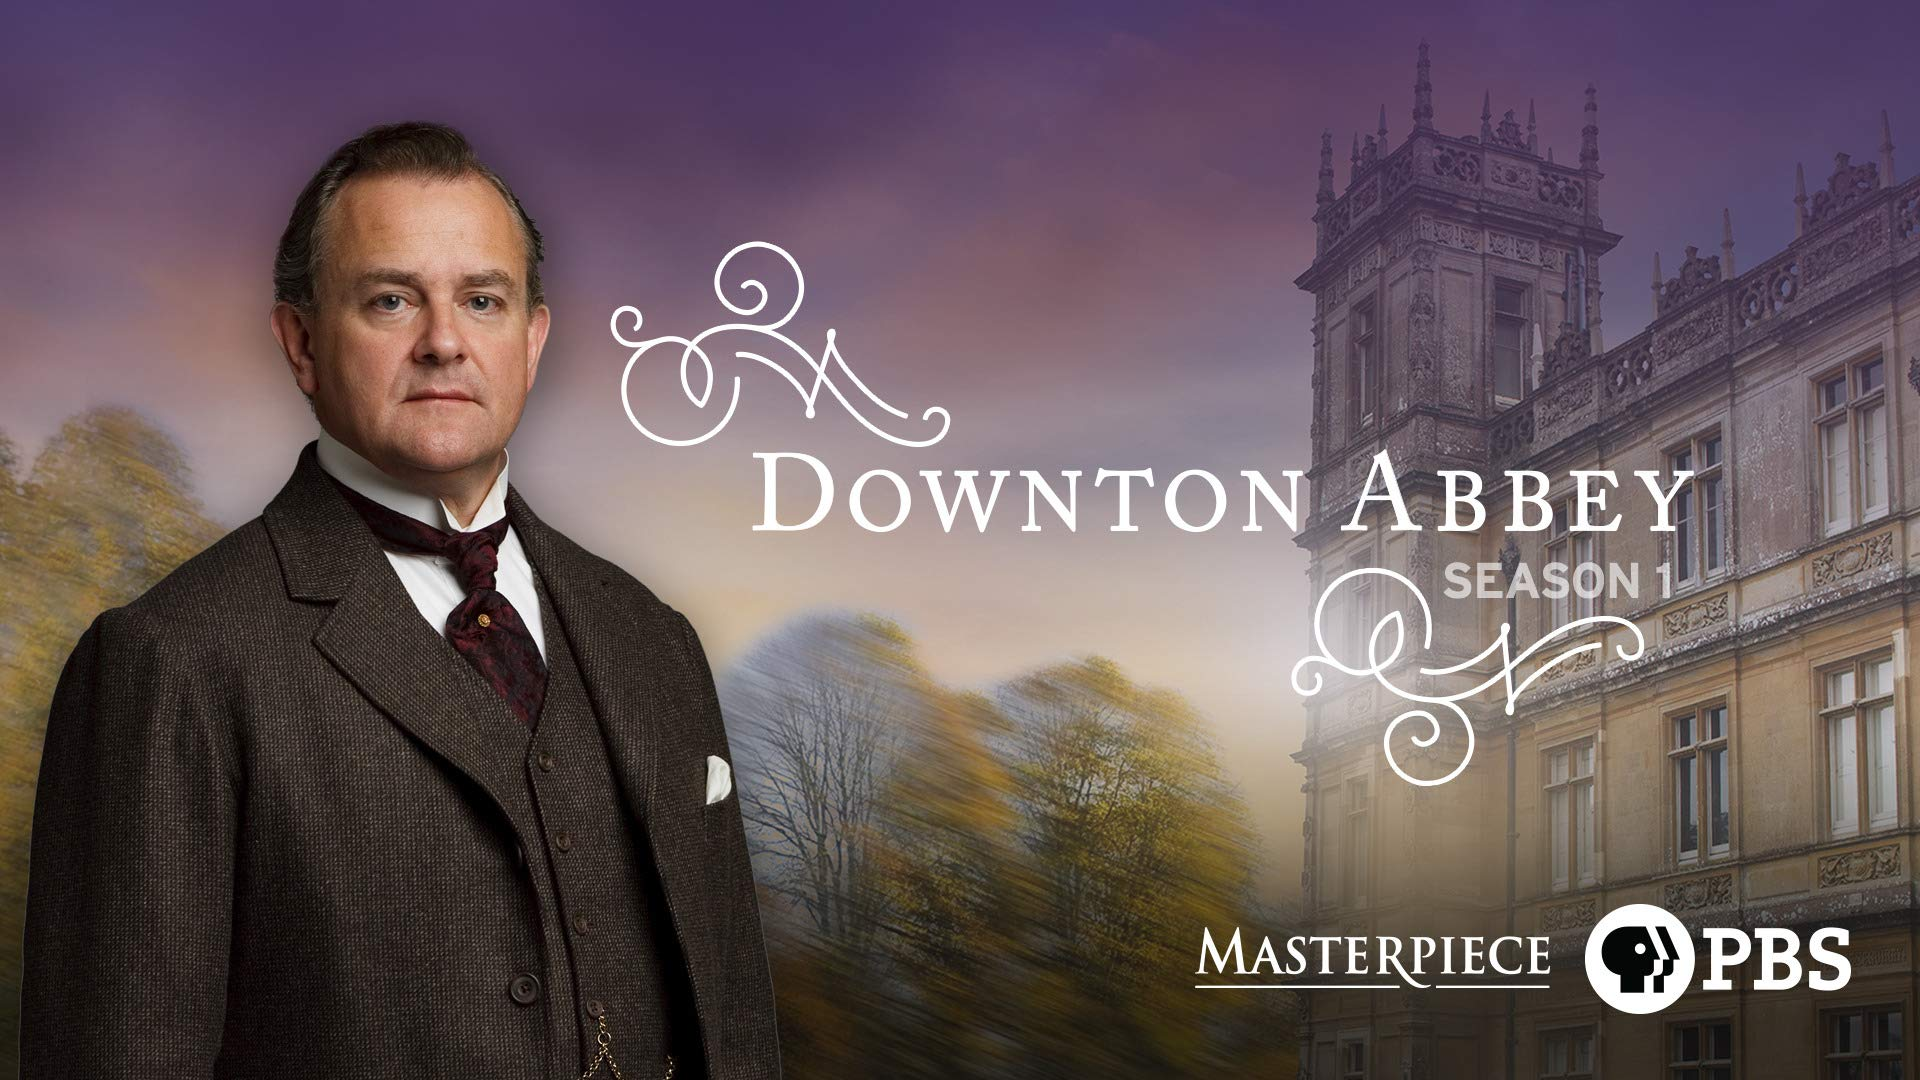 downton abbey season 4 episode 1 streaming free